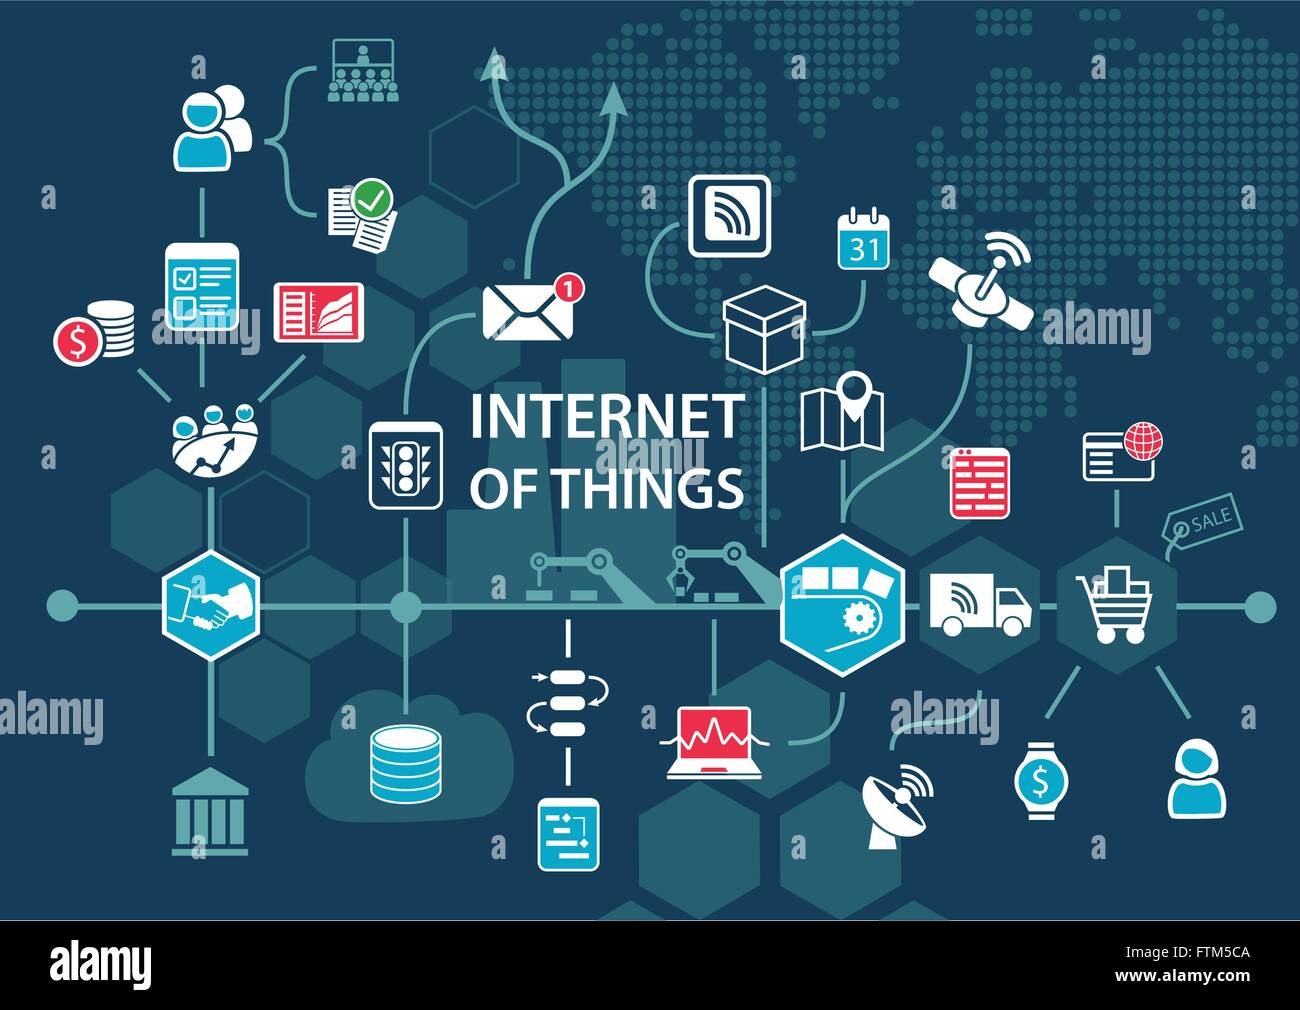 Internet of things (IOT) concept and infographic. Connected devices overview as technology background - Stock Image